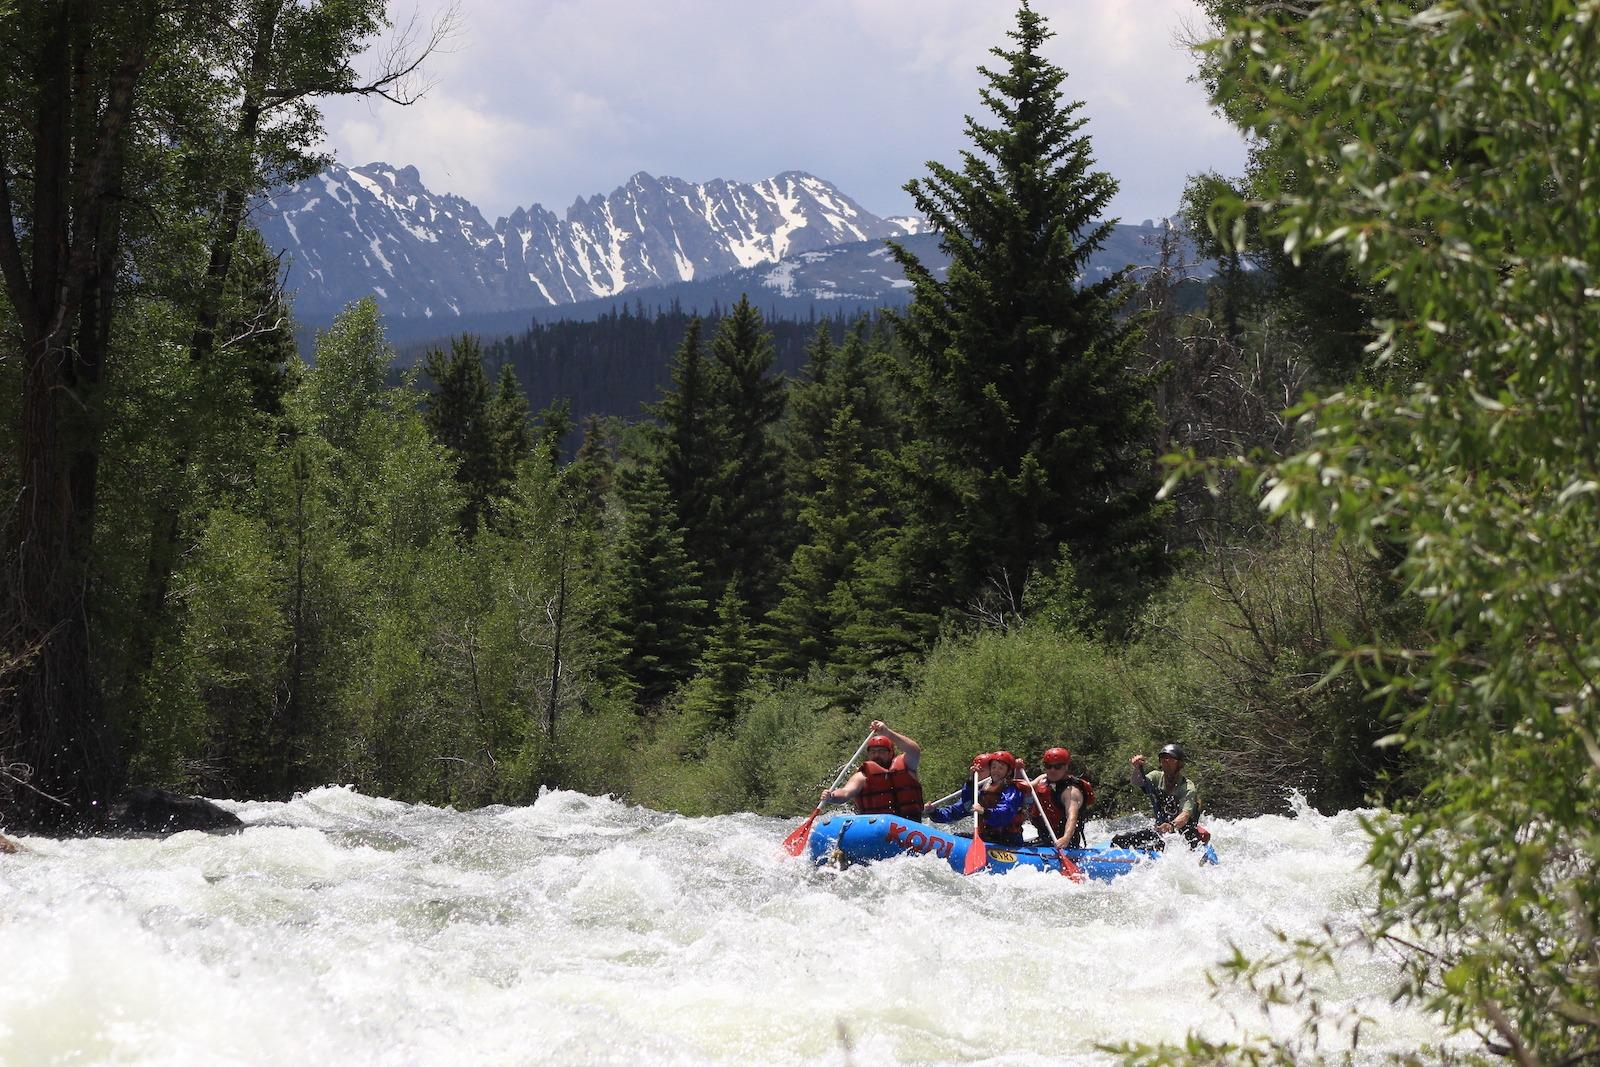 rafting the Blue River in Colorado